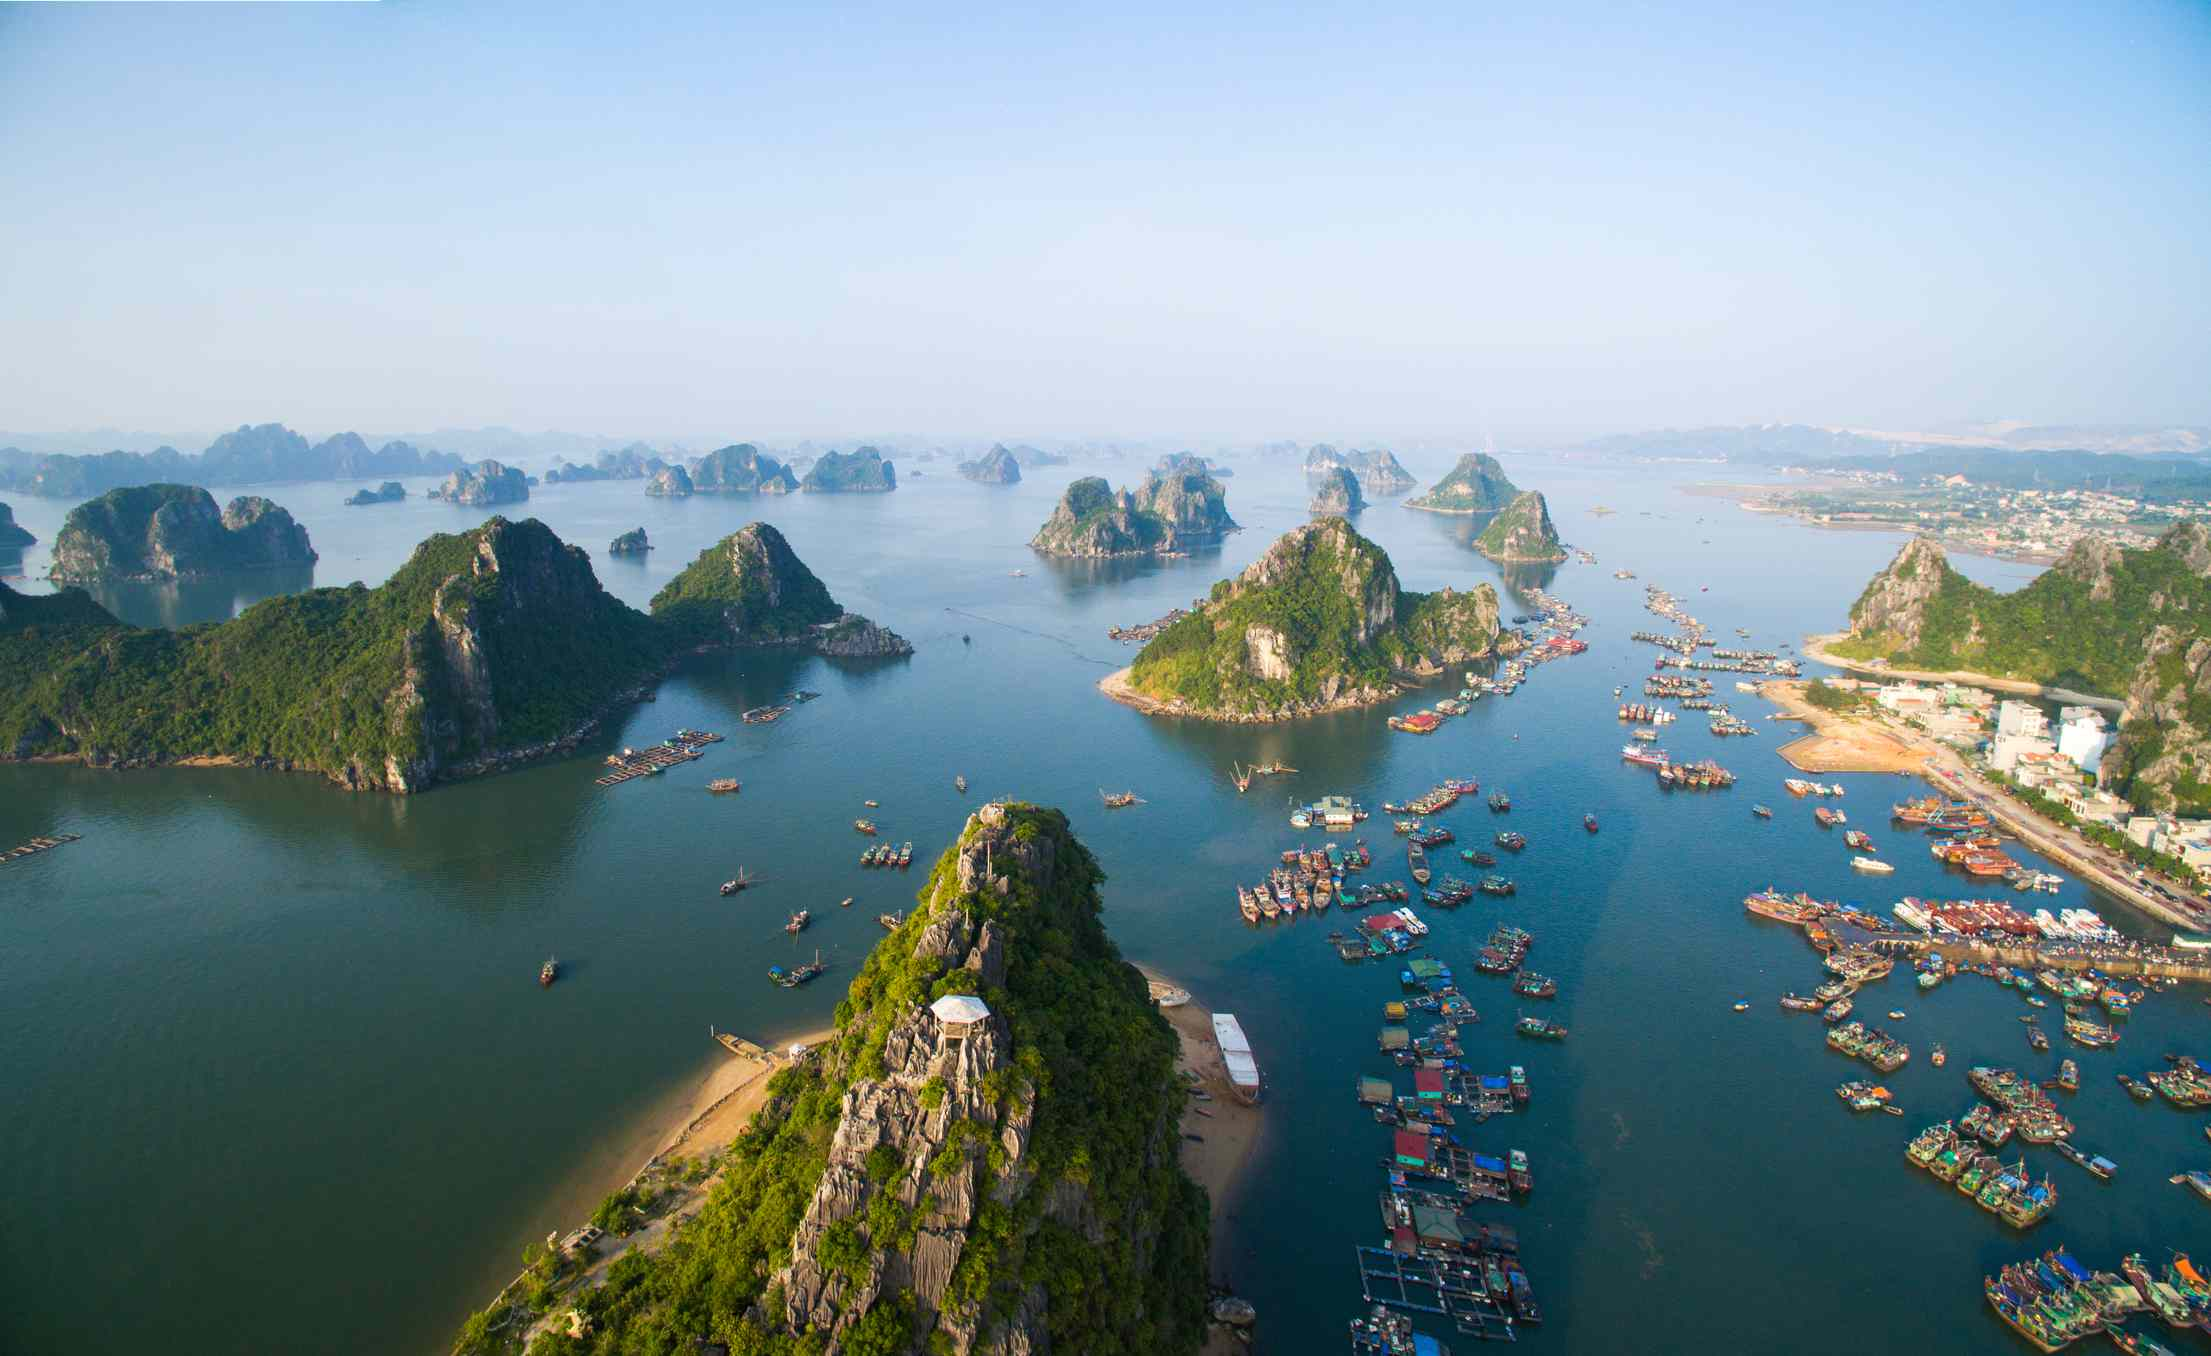 Top 10 Destinations for Your Vietnam Trip